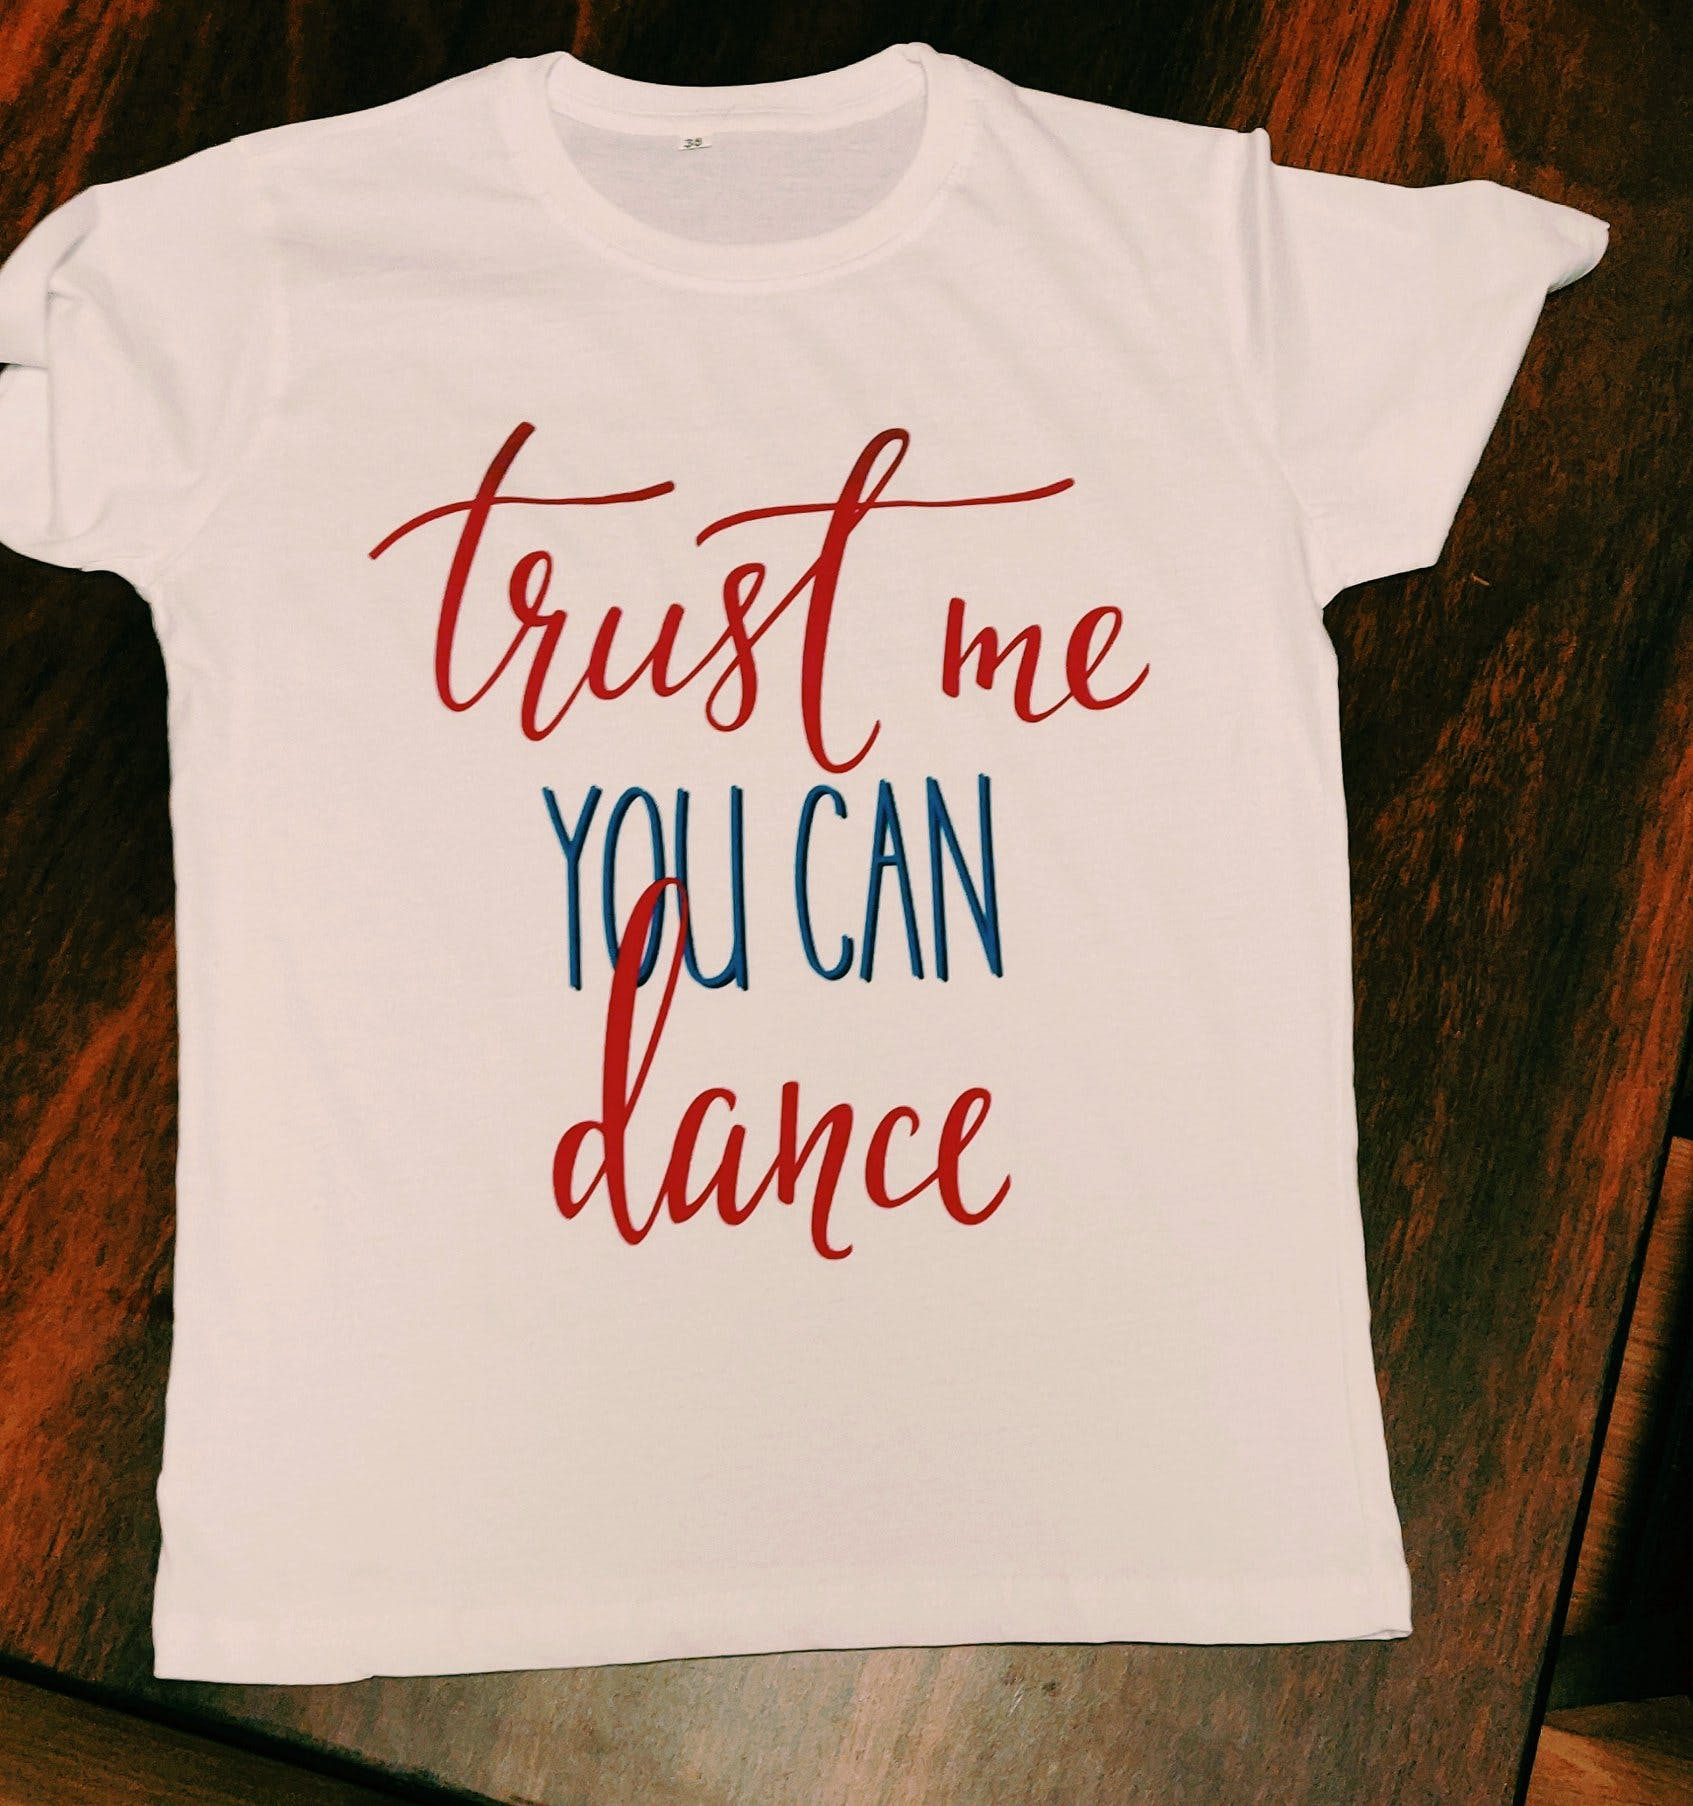 T-shirt,White,Product,Clothing,Text,Font,Red,Top,Sleeve,Neck